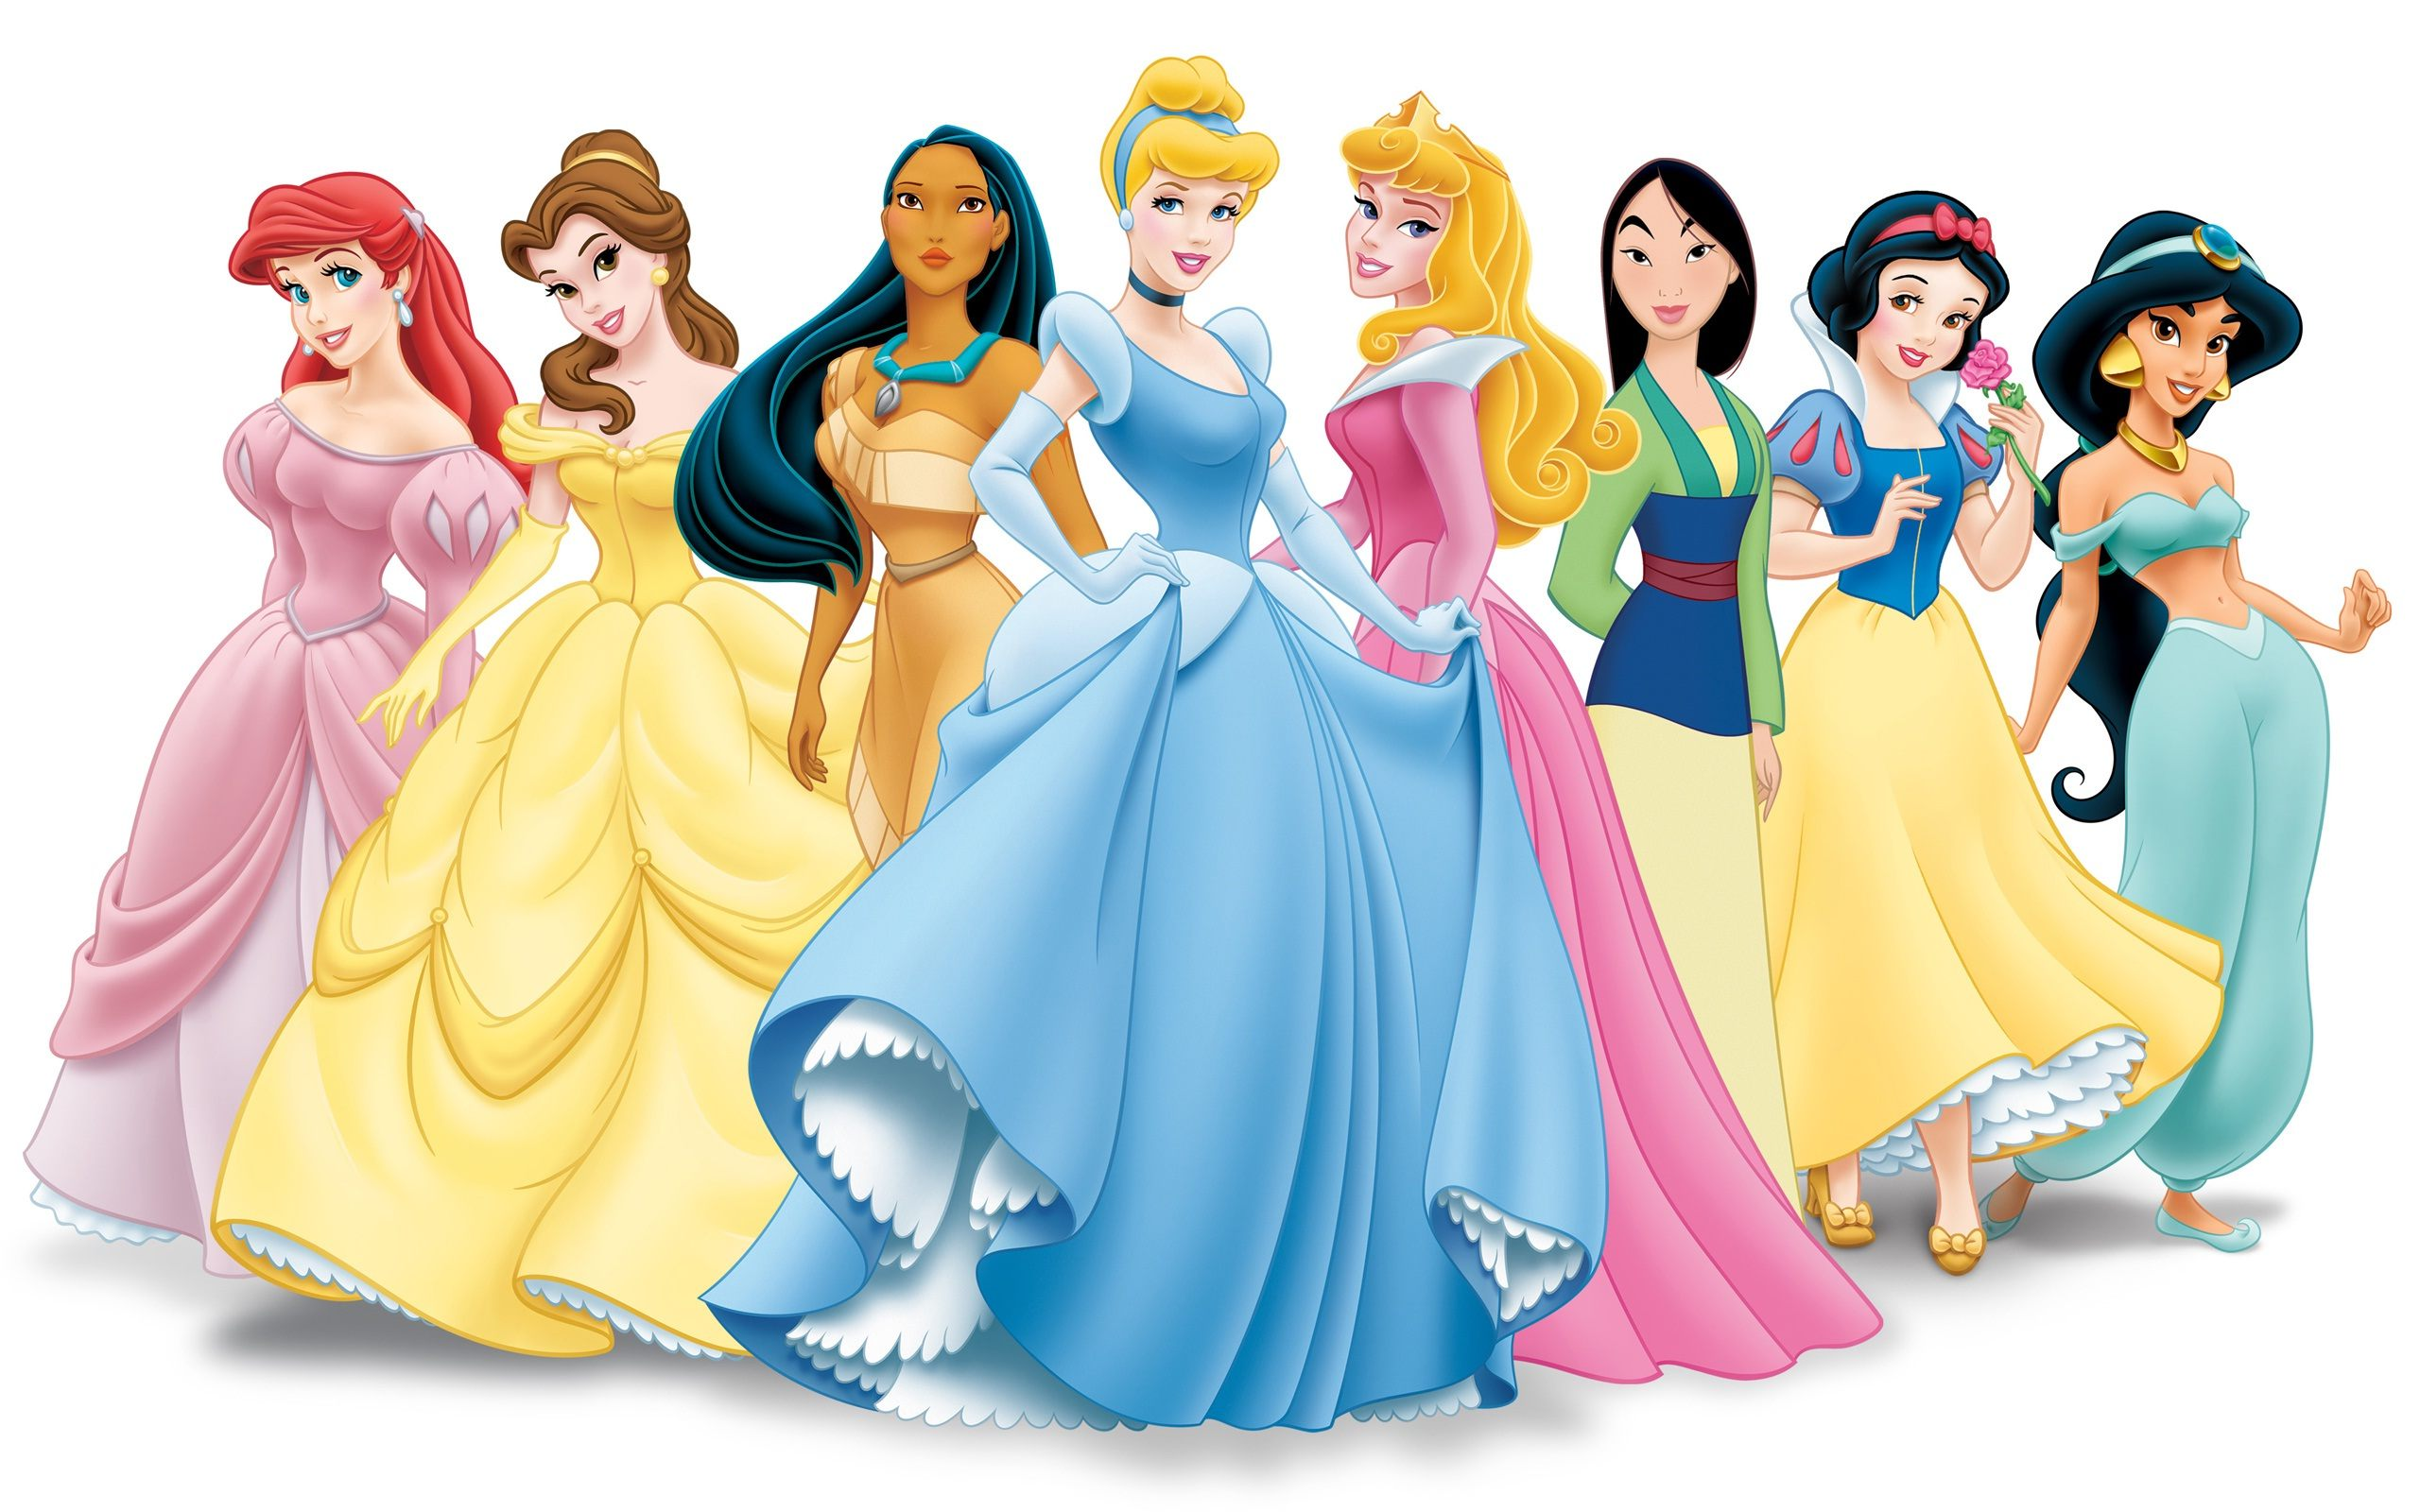 All Disney Princess Wallpaper Hd Images amp Pictures   Becuo 2560x1600